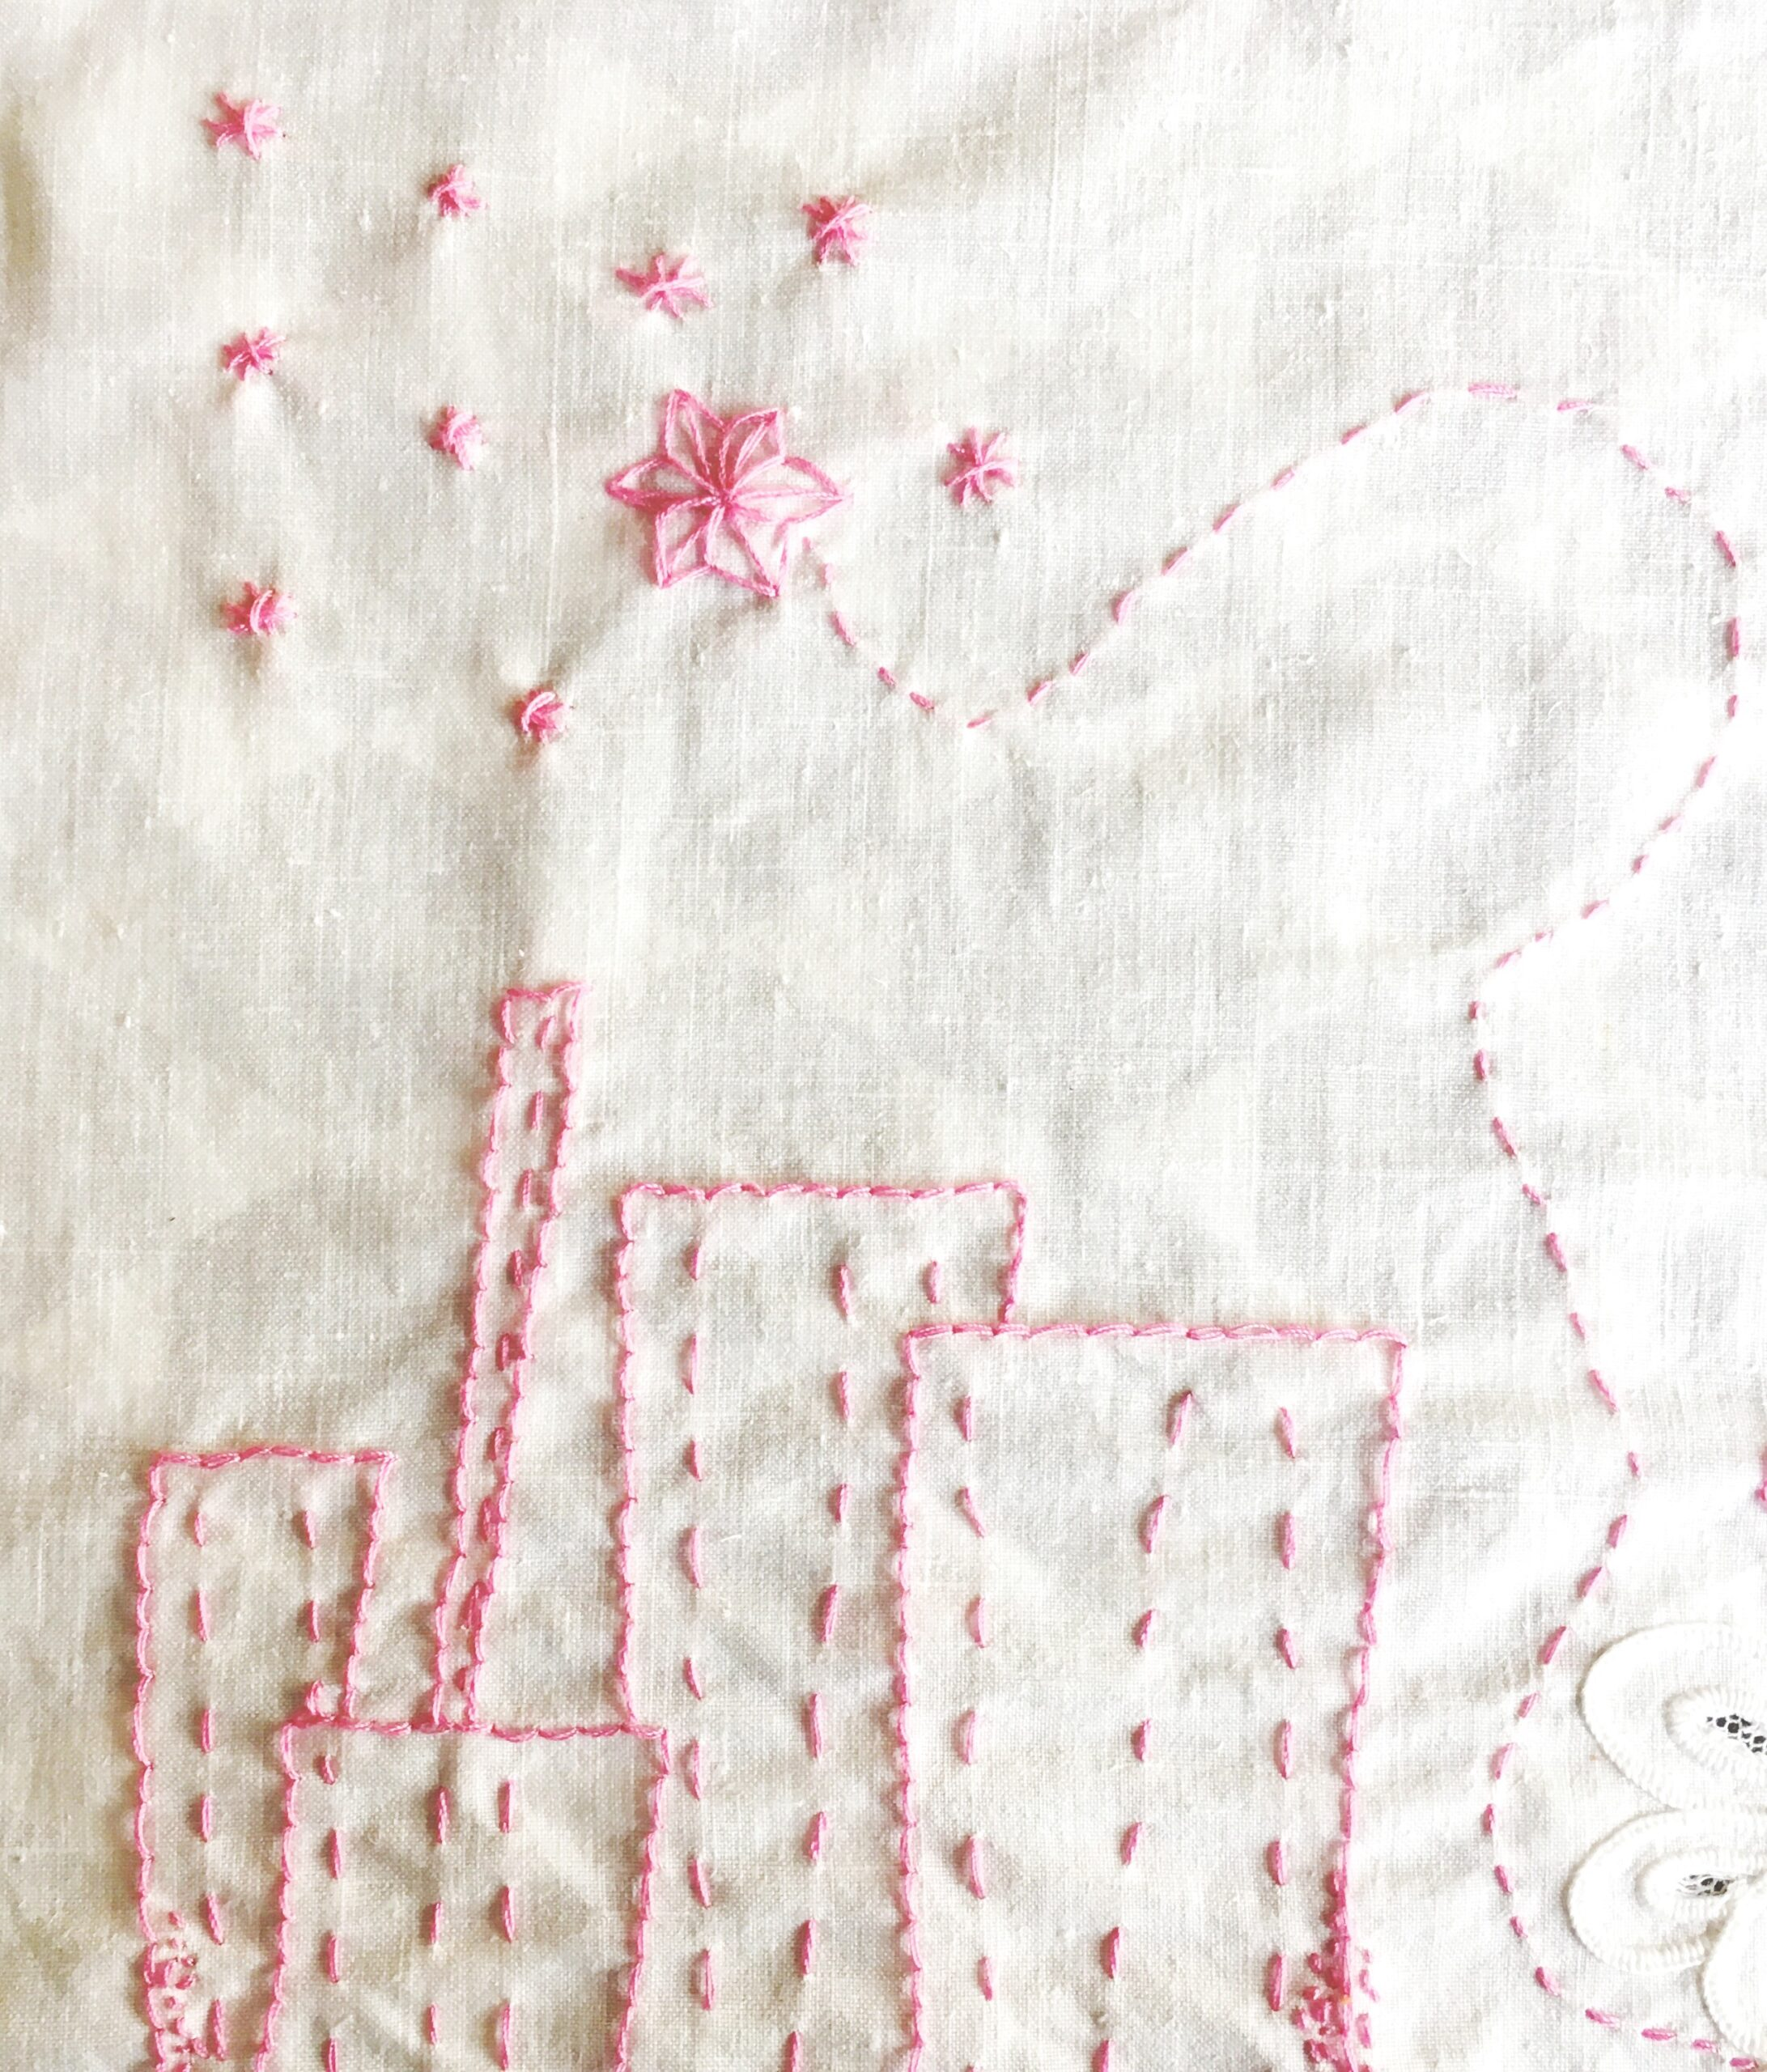 Detail from hand embroidery on vintage fabric